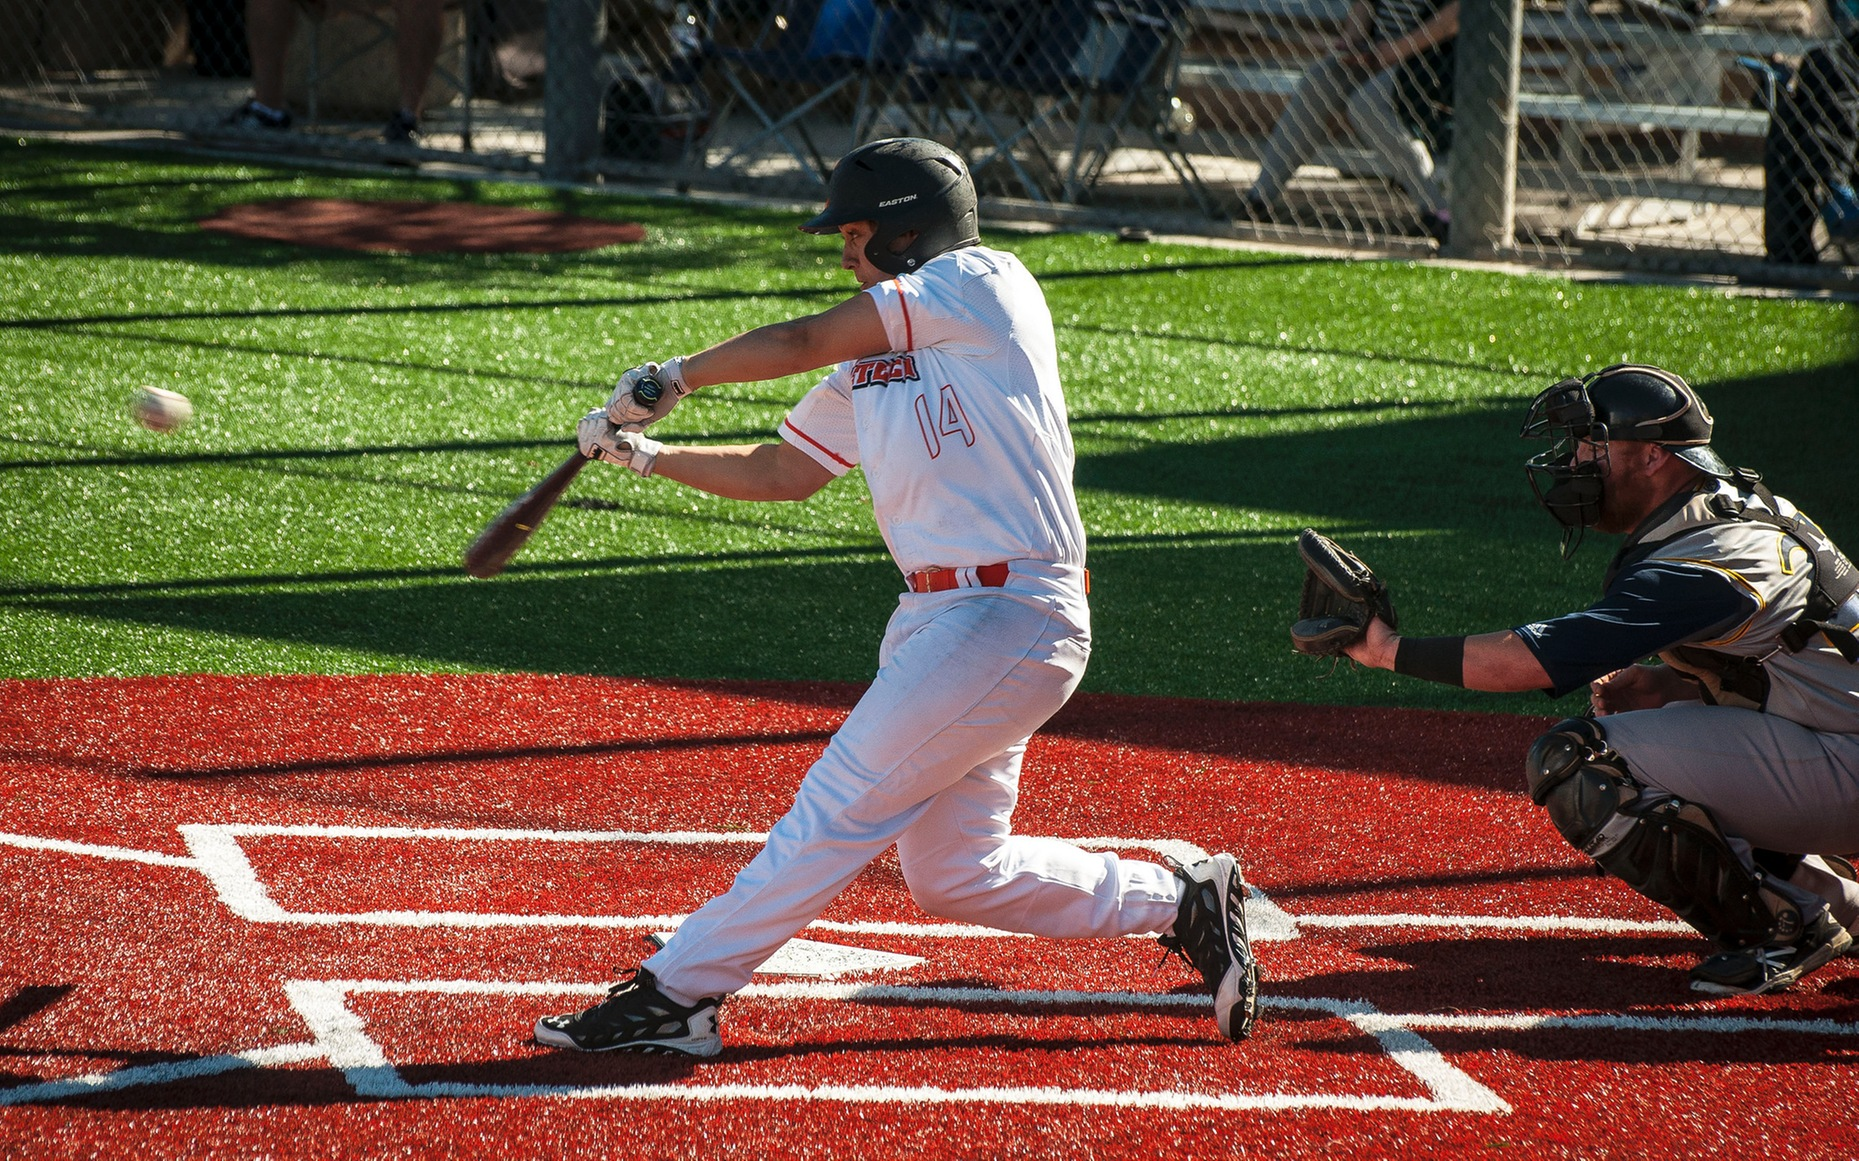 Moffatt Home Run Fuels Caltech Bats Against Williams